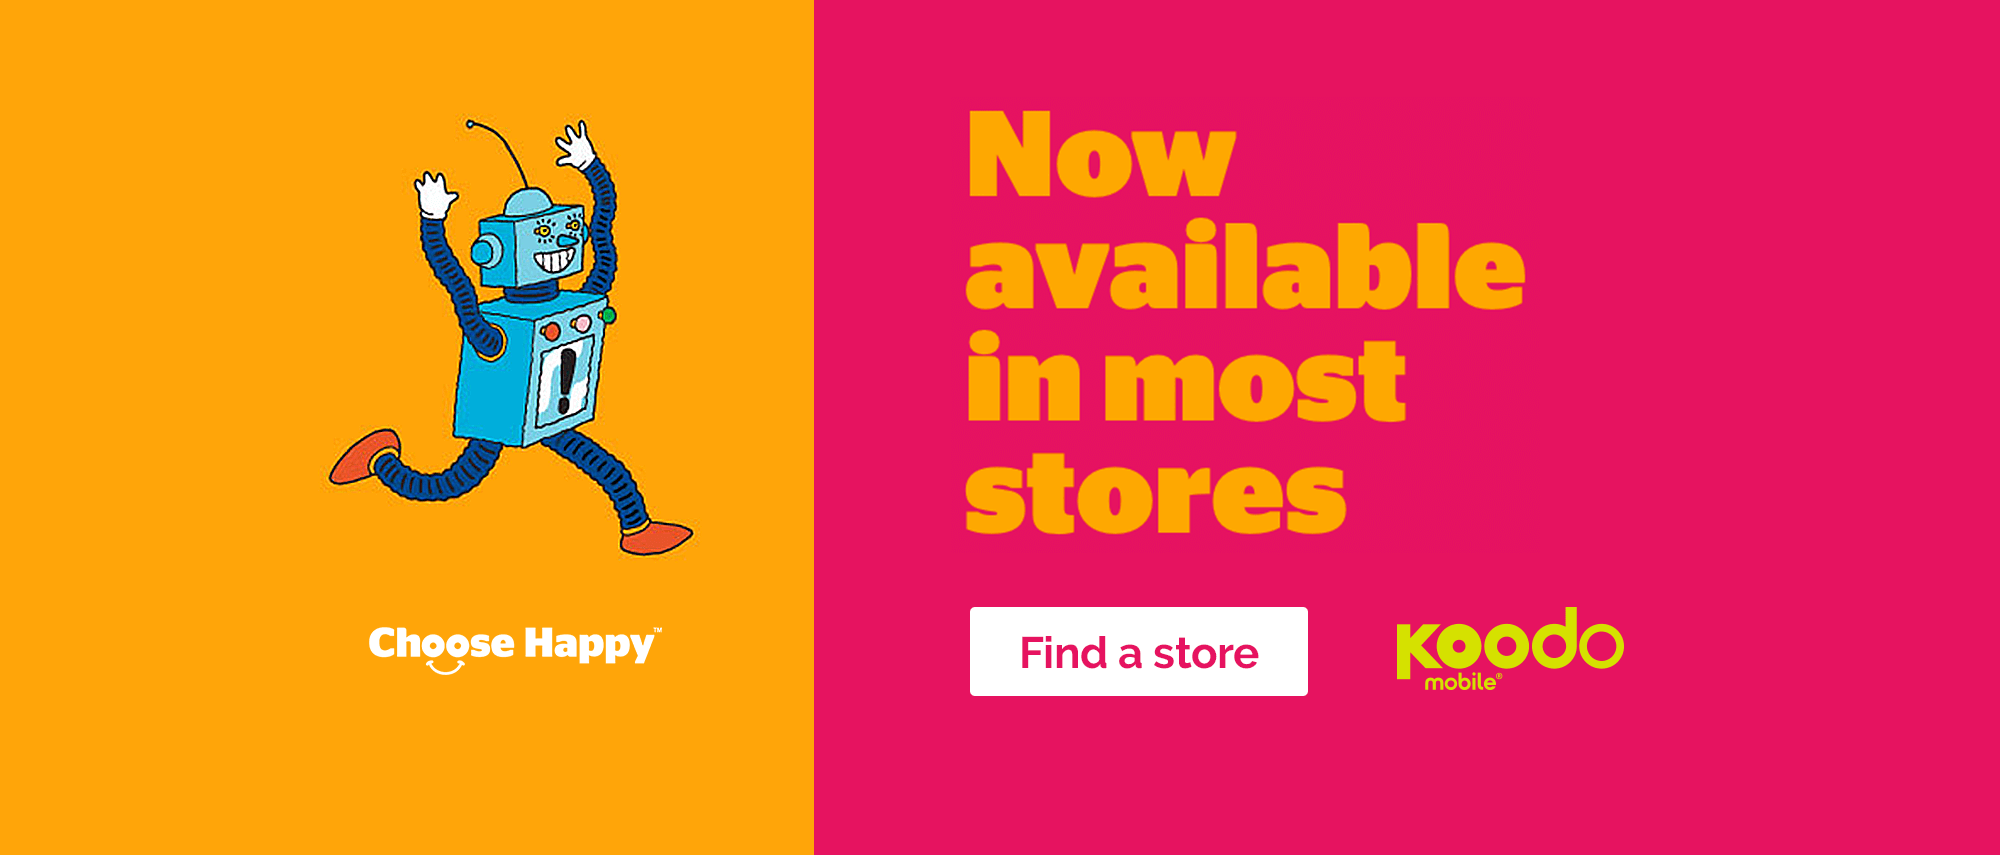 Koodo Mobile Now Available in Most Stores